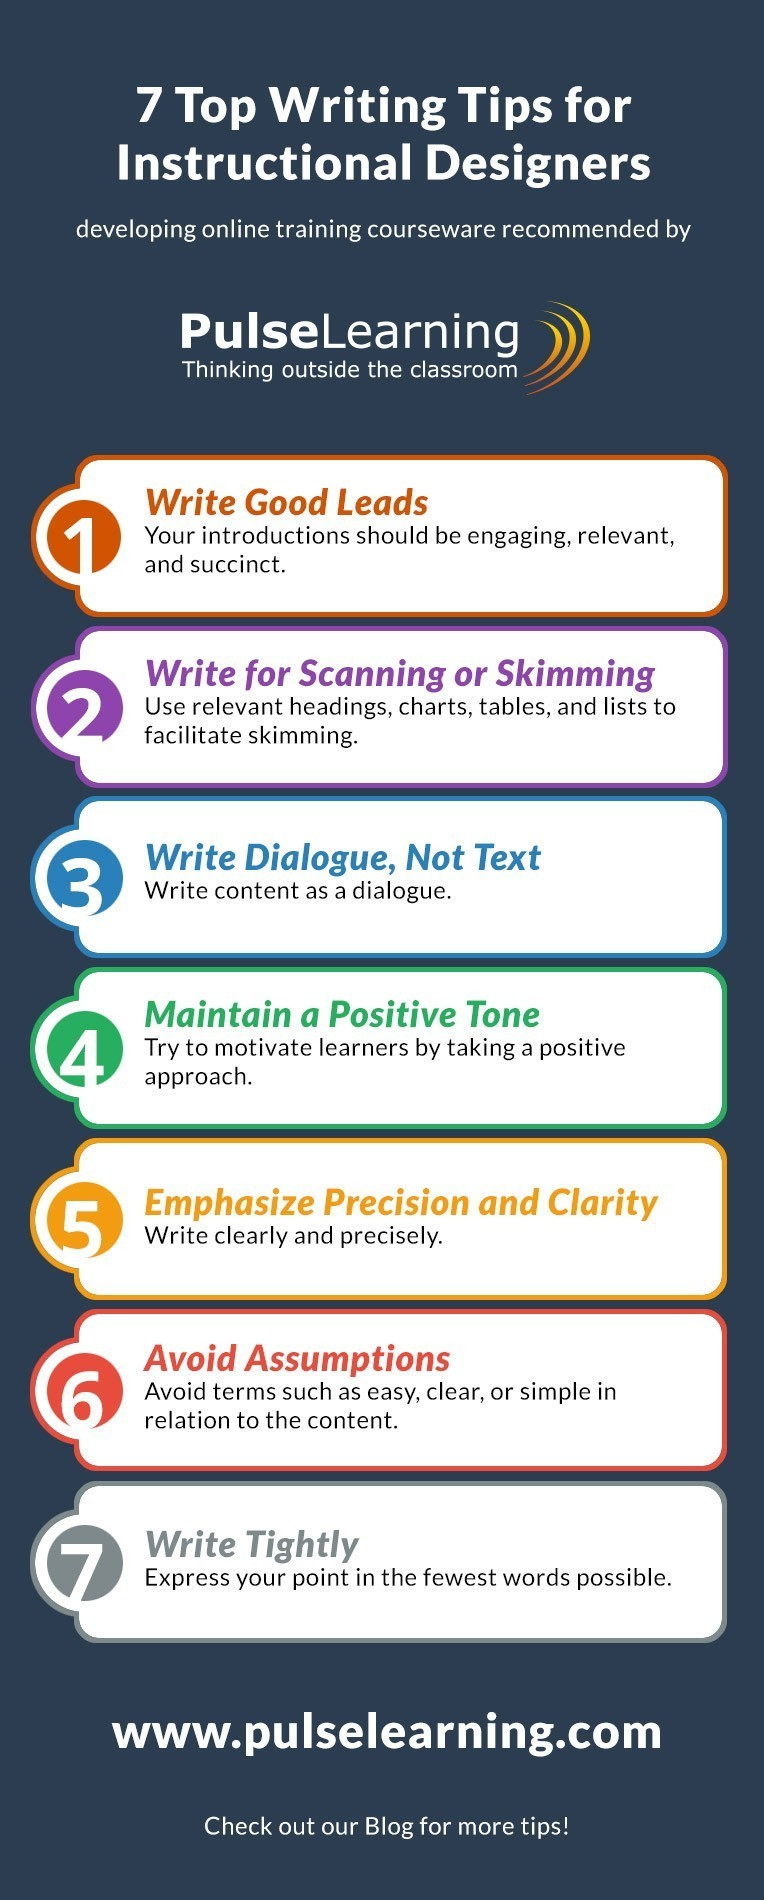 Top Writing Tips for Instructional Designers Infographic - e-Learning Infographicse-Learning Infographics thumbnail